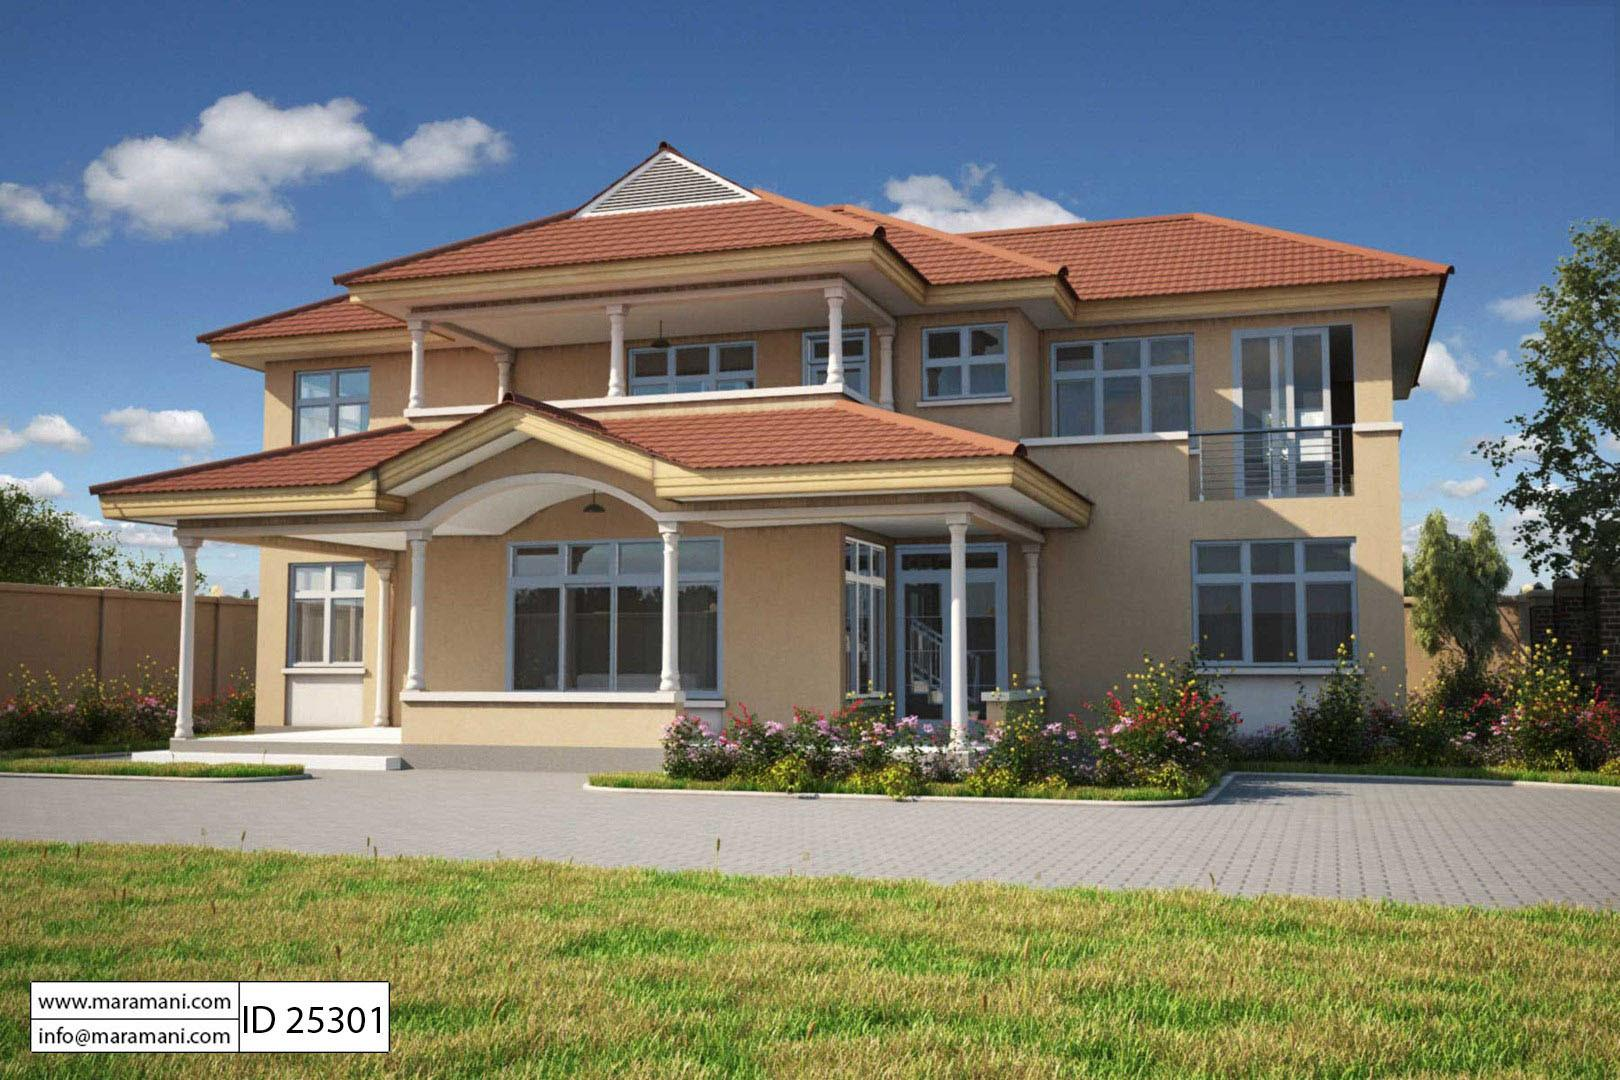 5 Bedroom House Plan 2 Story Id 25301 House Plans By